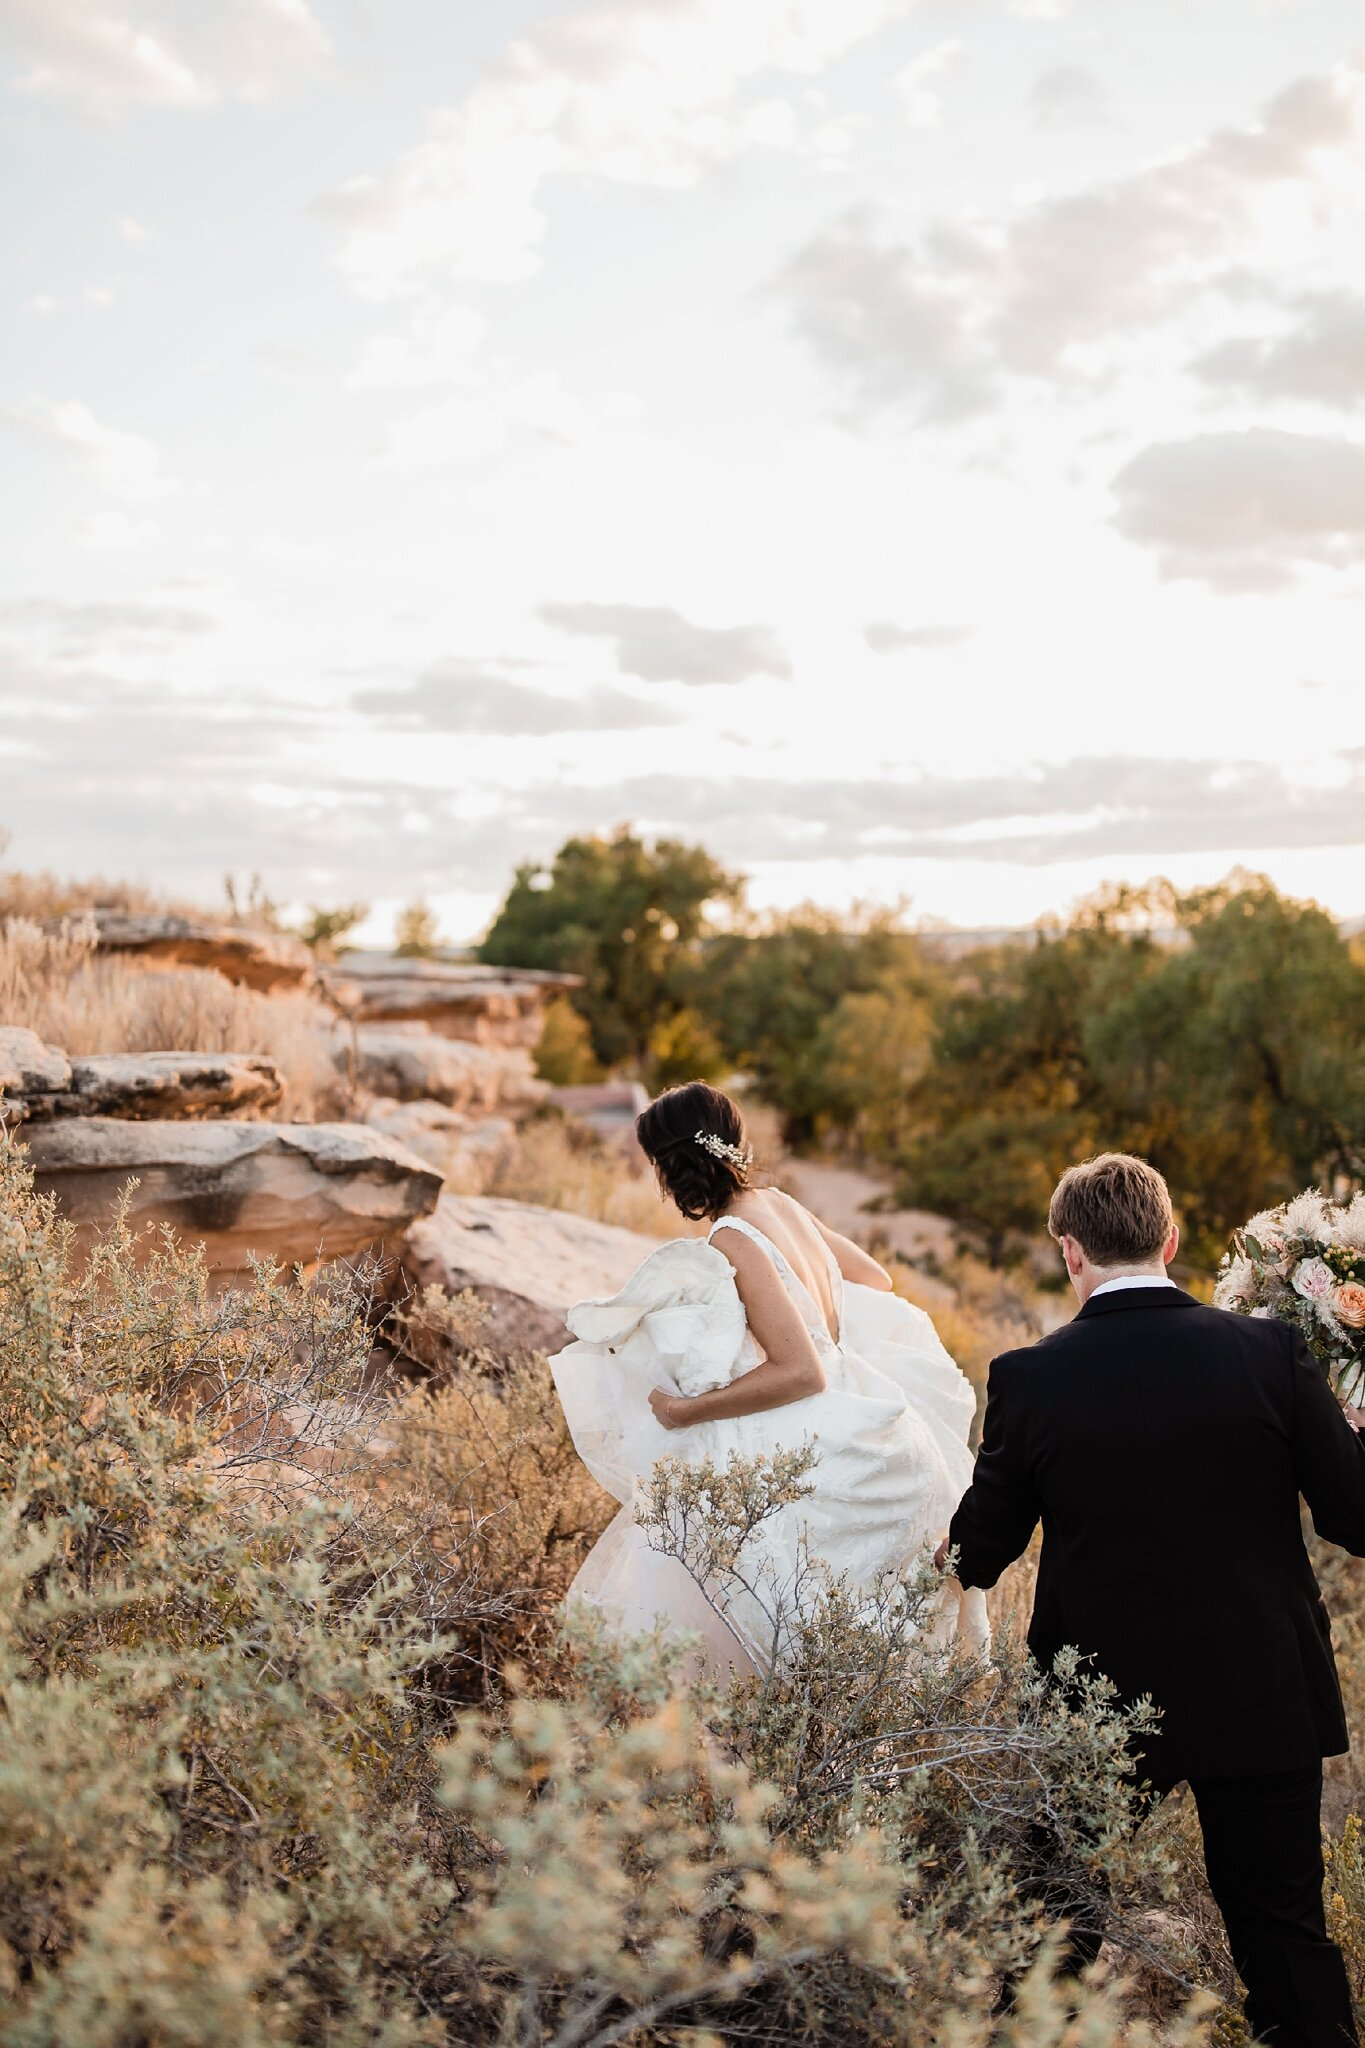 Alicia+lucia+photography+-+albuquerque+wedding+photographer+-+santa+fe+wedding+photography+-+new+mexico+wedding+photographer+-+new+mexico+wedding+-+wedding+-+bridal+gown+-+wedding+gown+-+ballgown+wedding+gown+-+ballgown+bridal+gown_0071.jpg